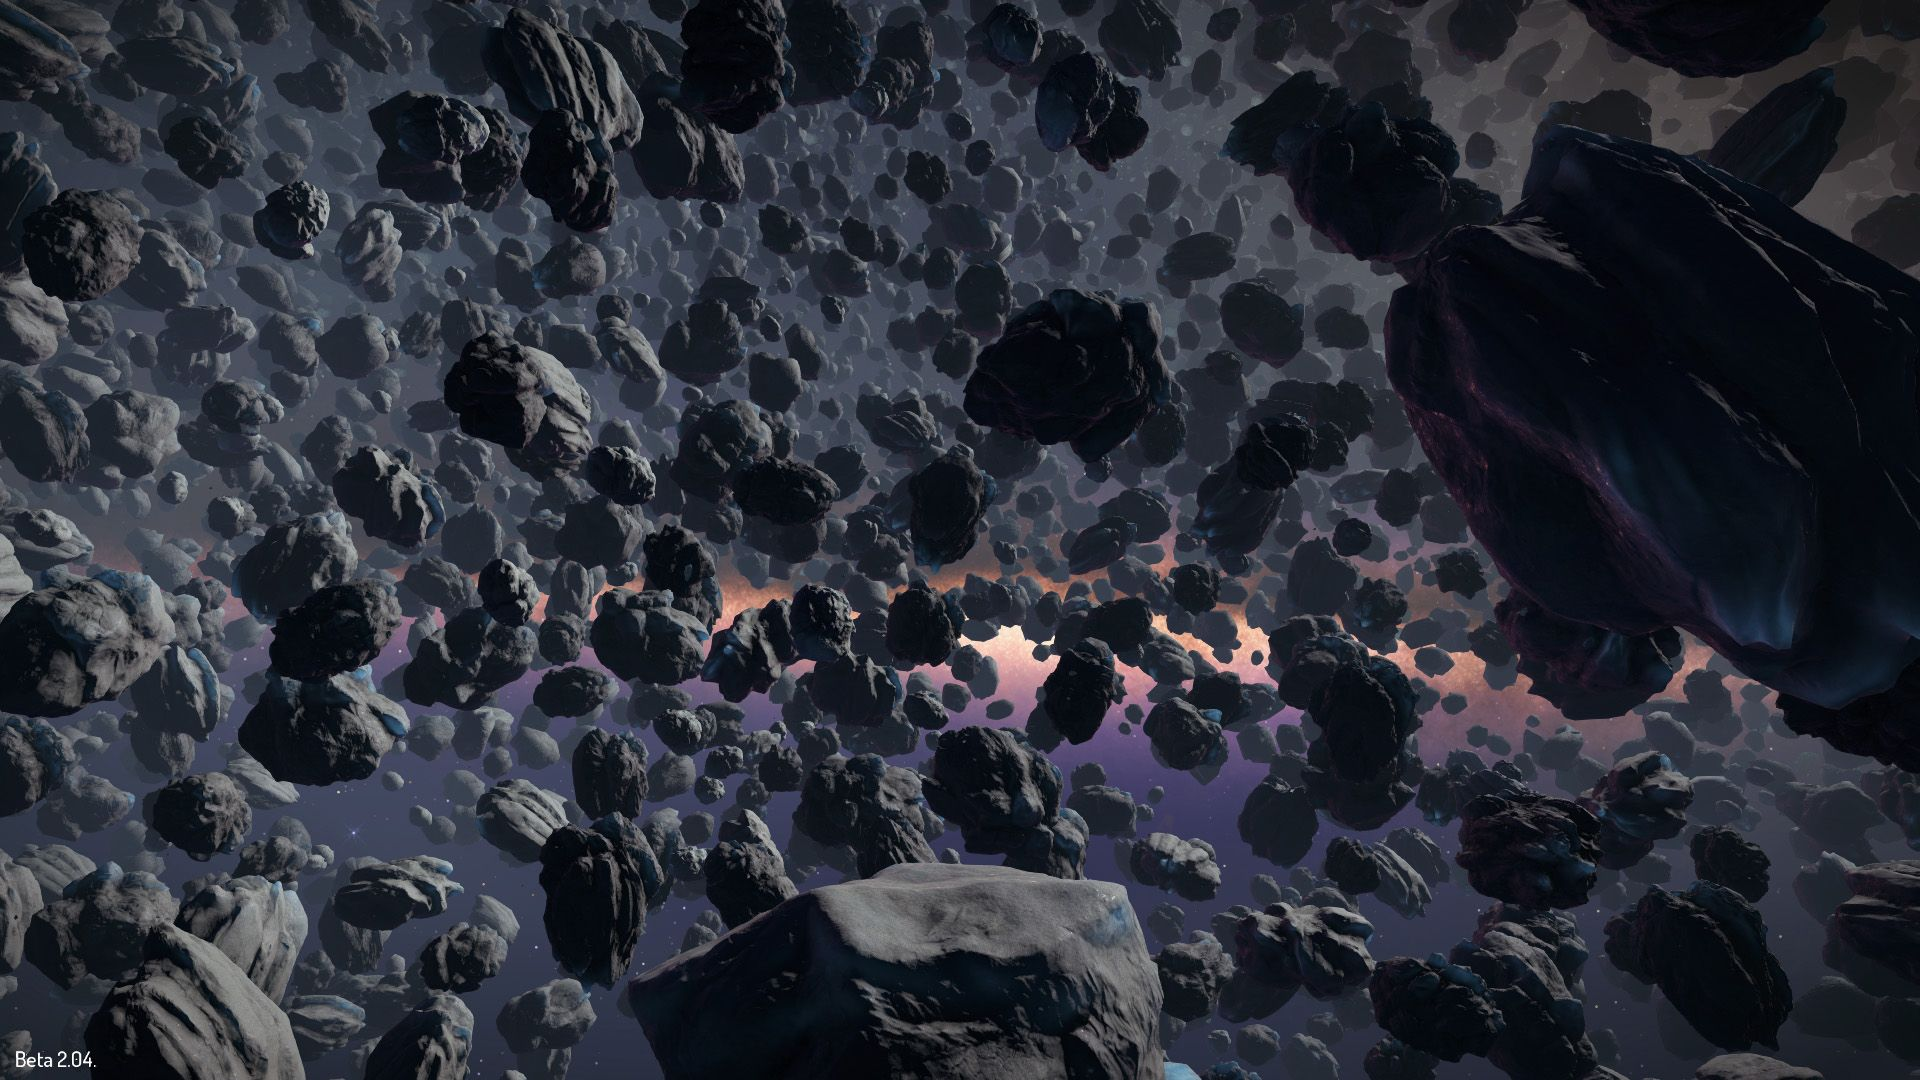 space asteroid belt - Google Search | Meteorite | Asteroid ...